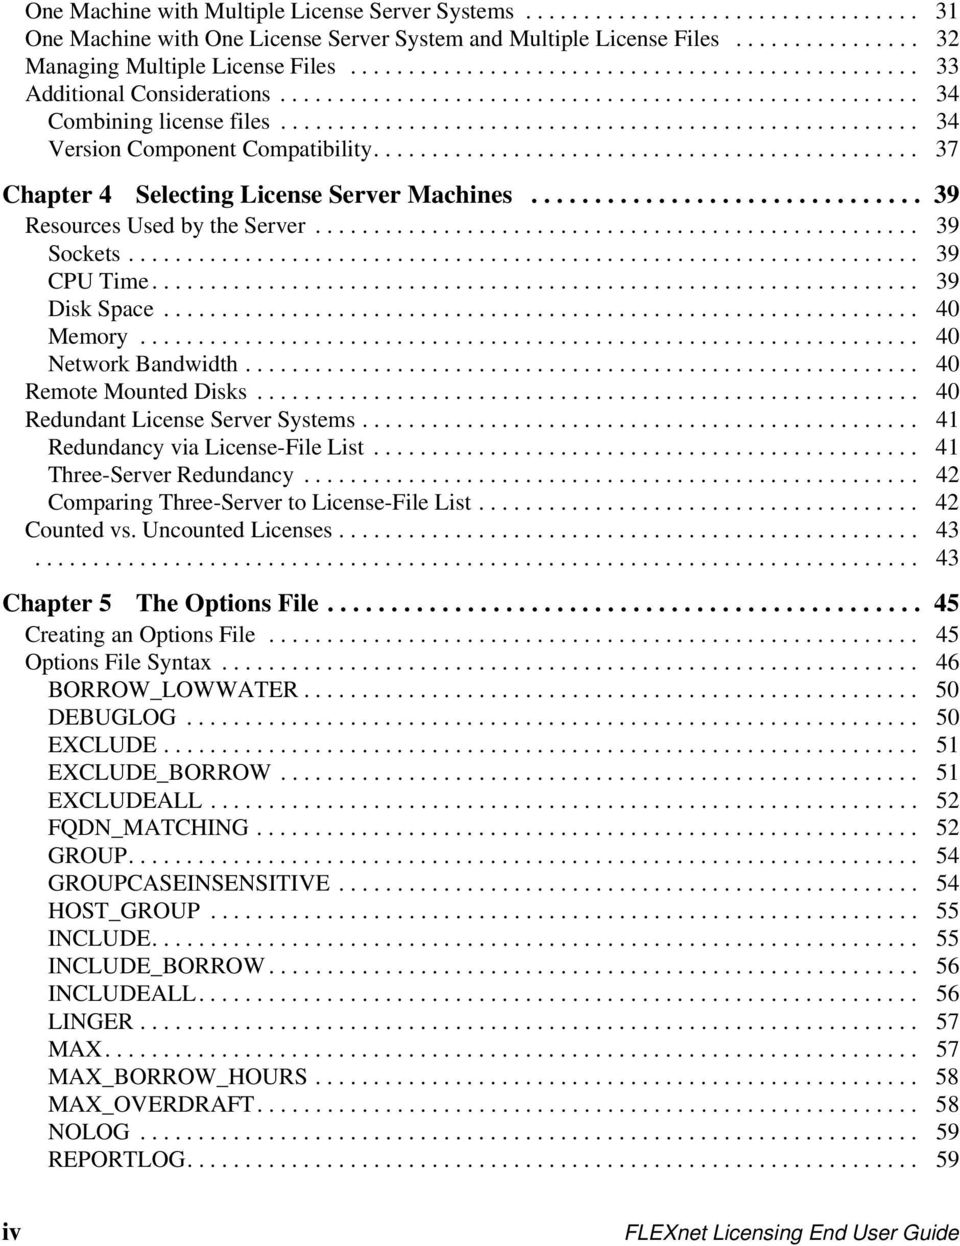 .............................................. 37 Chapter 4 Selecting License Server Machines............................... 39 Resources Used by the Server.................................................... 39 Sockets.